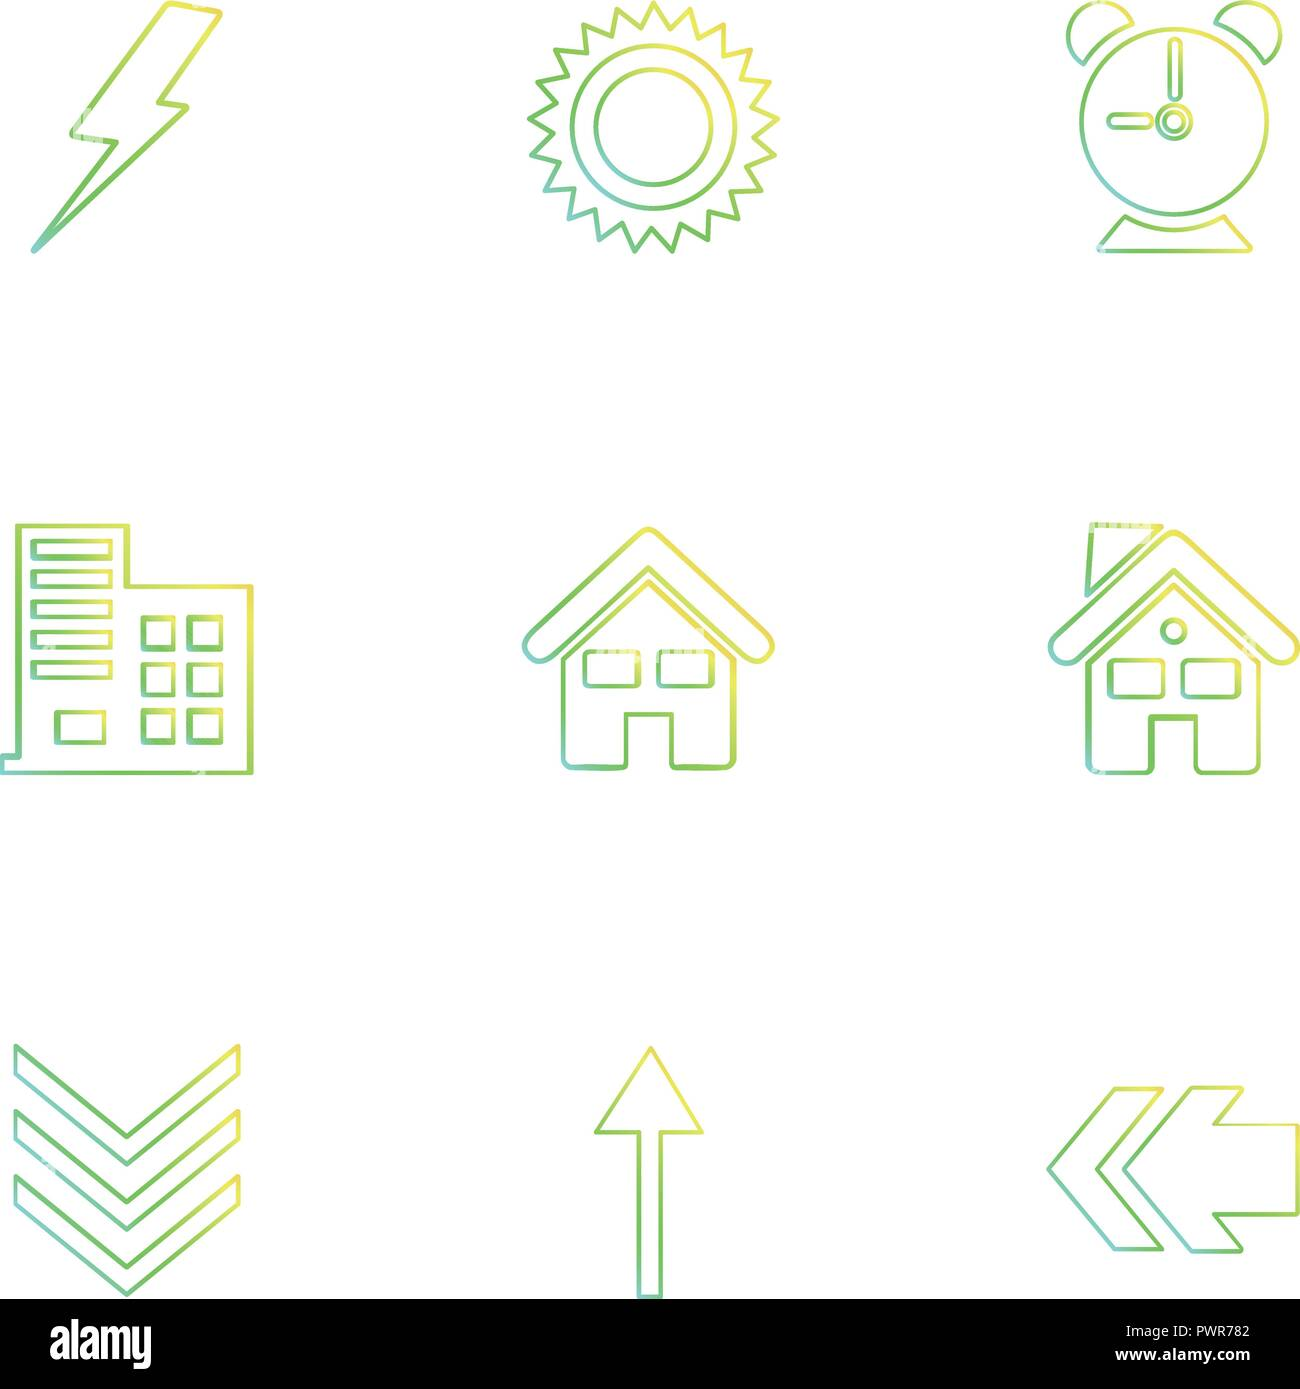 electric , alarm , home , back , ecology , sun , cloud , rain , weather ,  icon, vector, design, flat, collection, style, creative, icons , sky , po